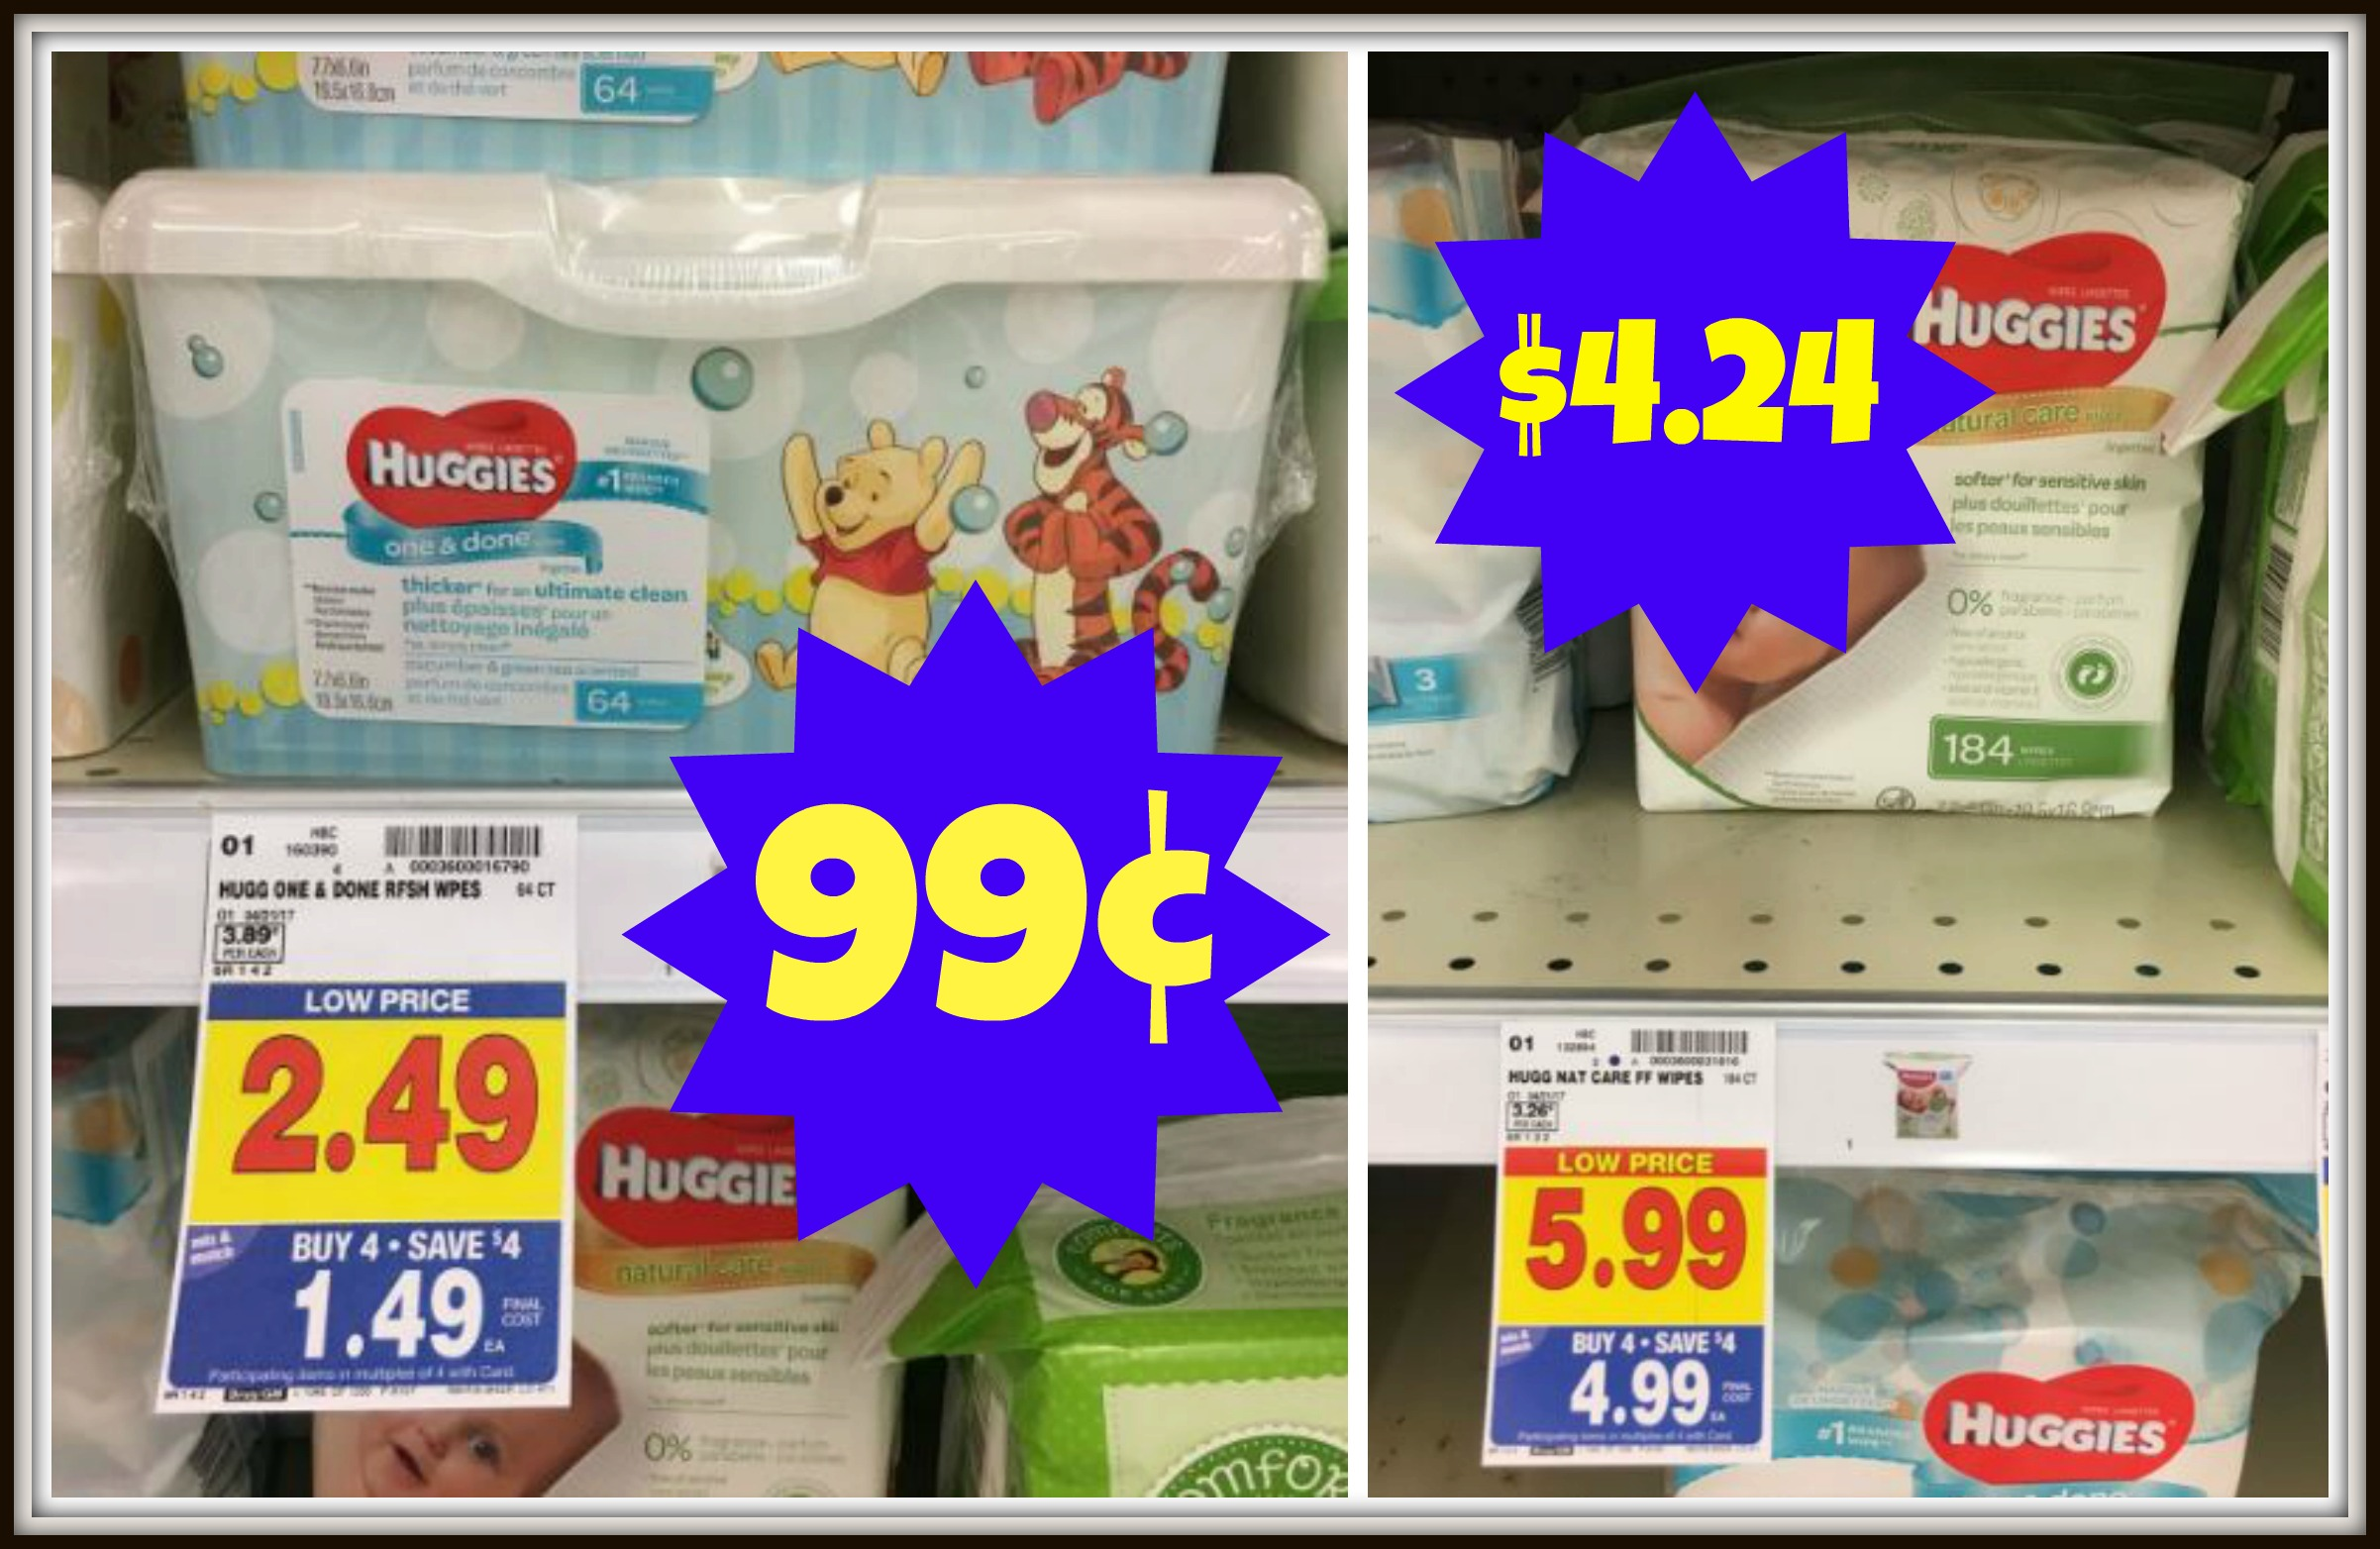 Huggie Wipes Coupons